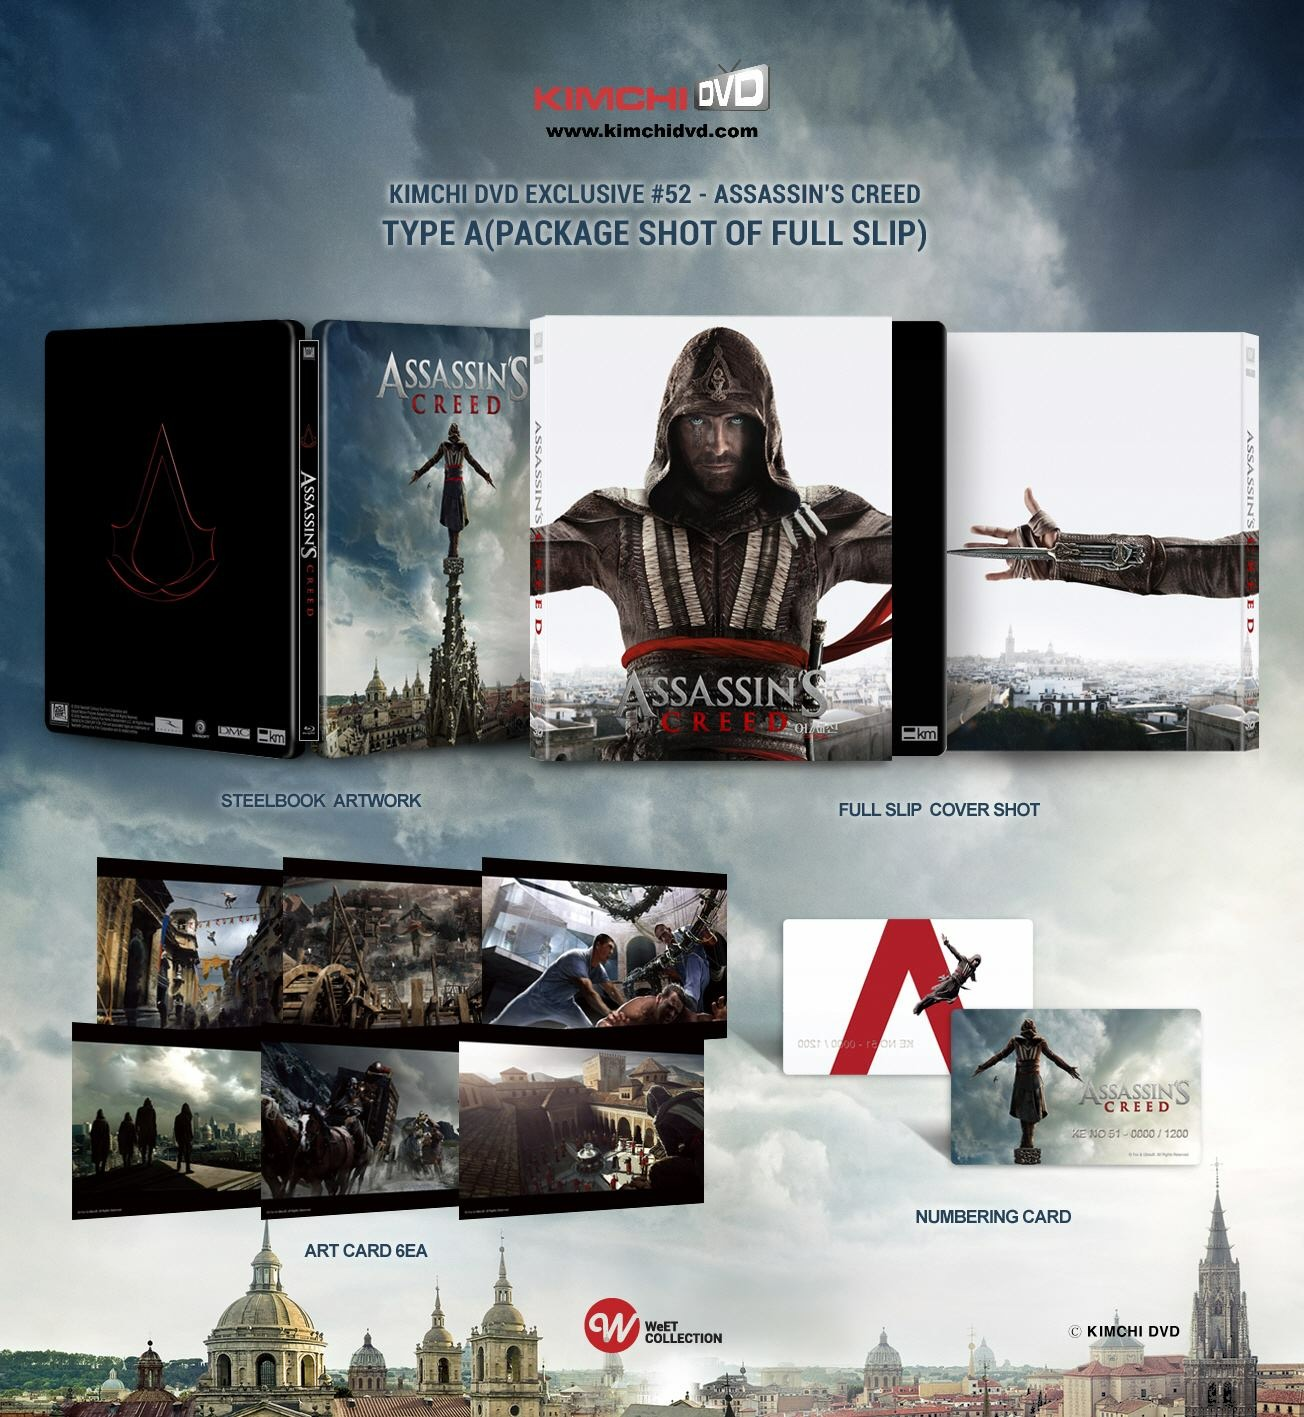 Assassin's Creed steelbook kimchidvd 1